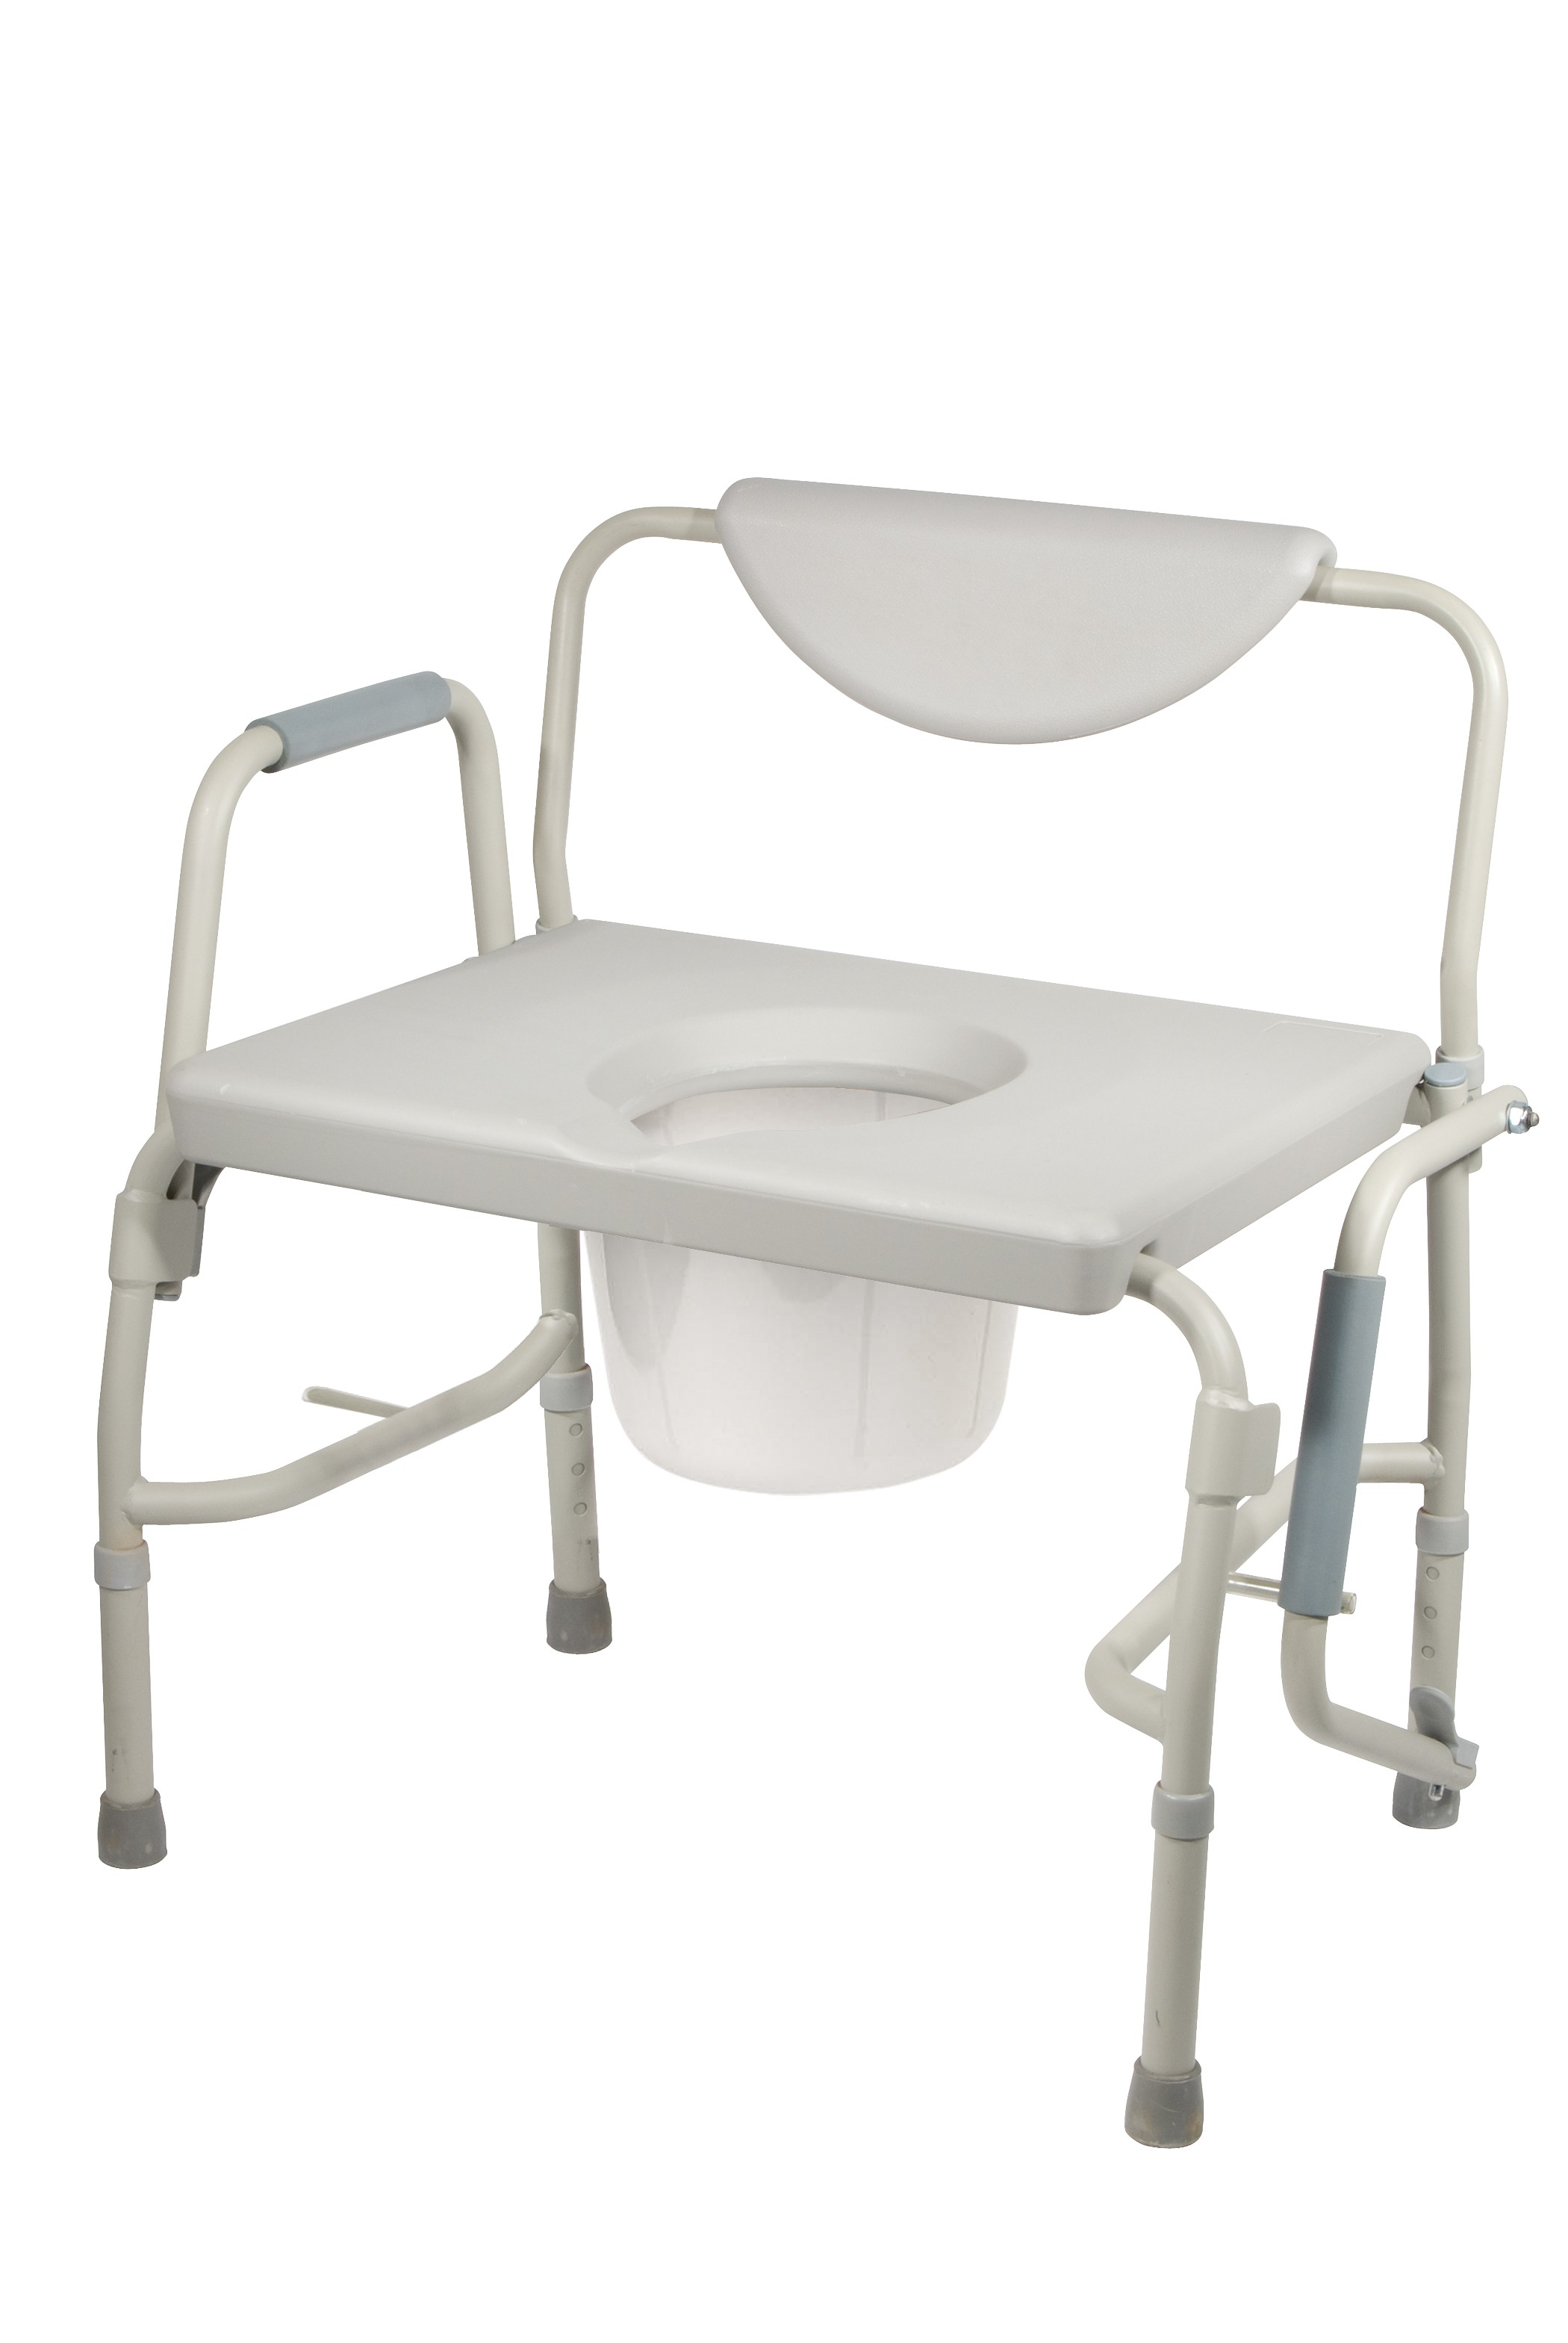 Bedside Commode Chair Bariatric Drop Arm Bedside Commode